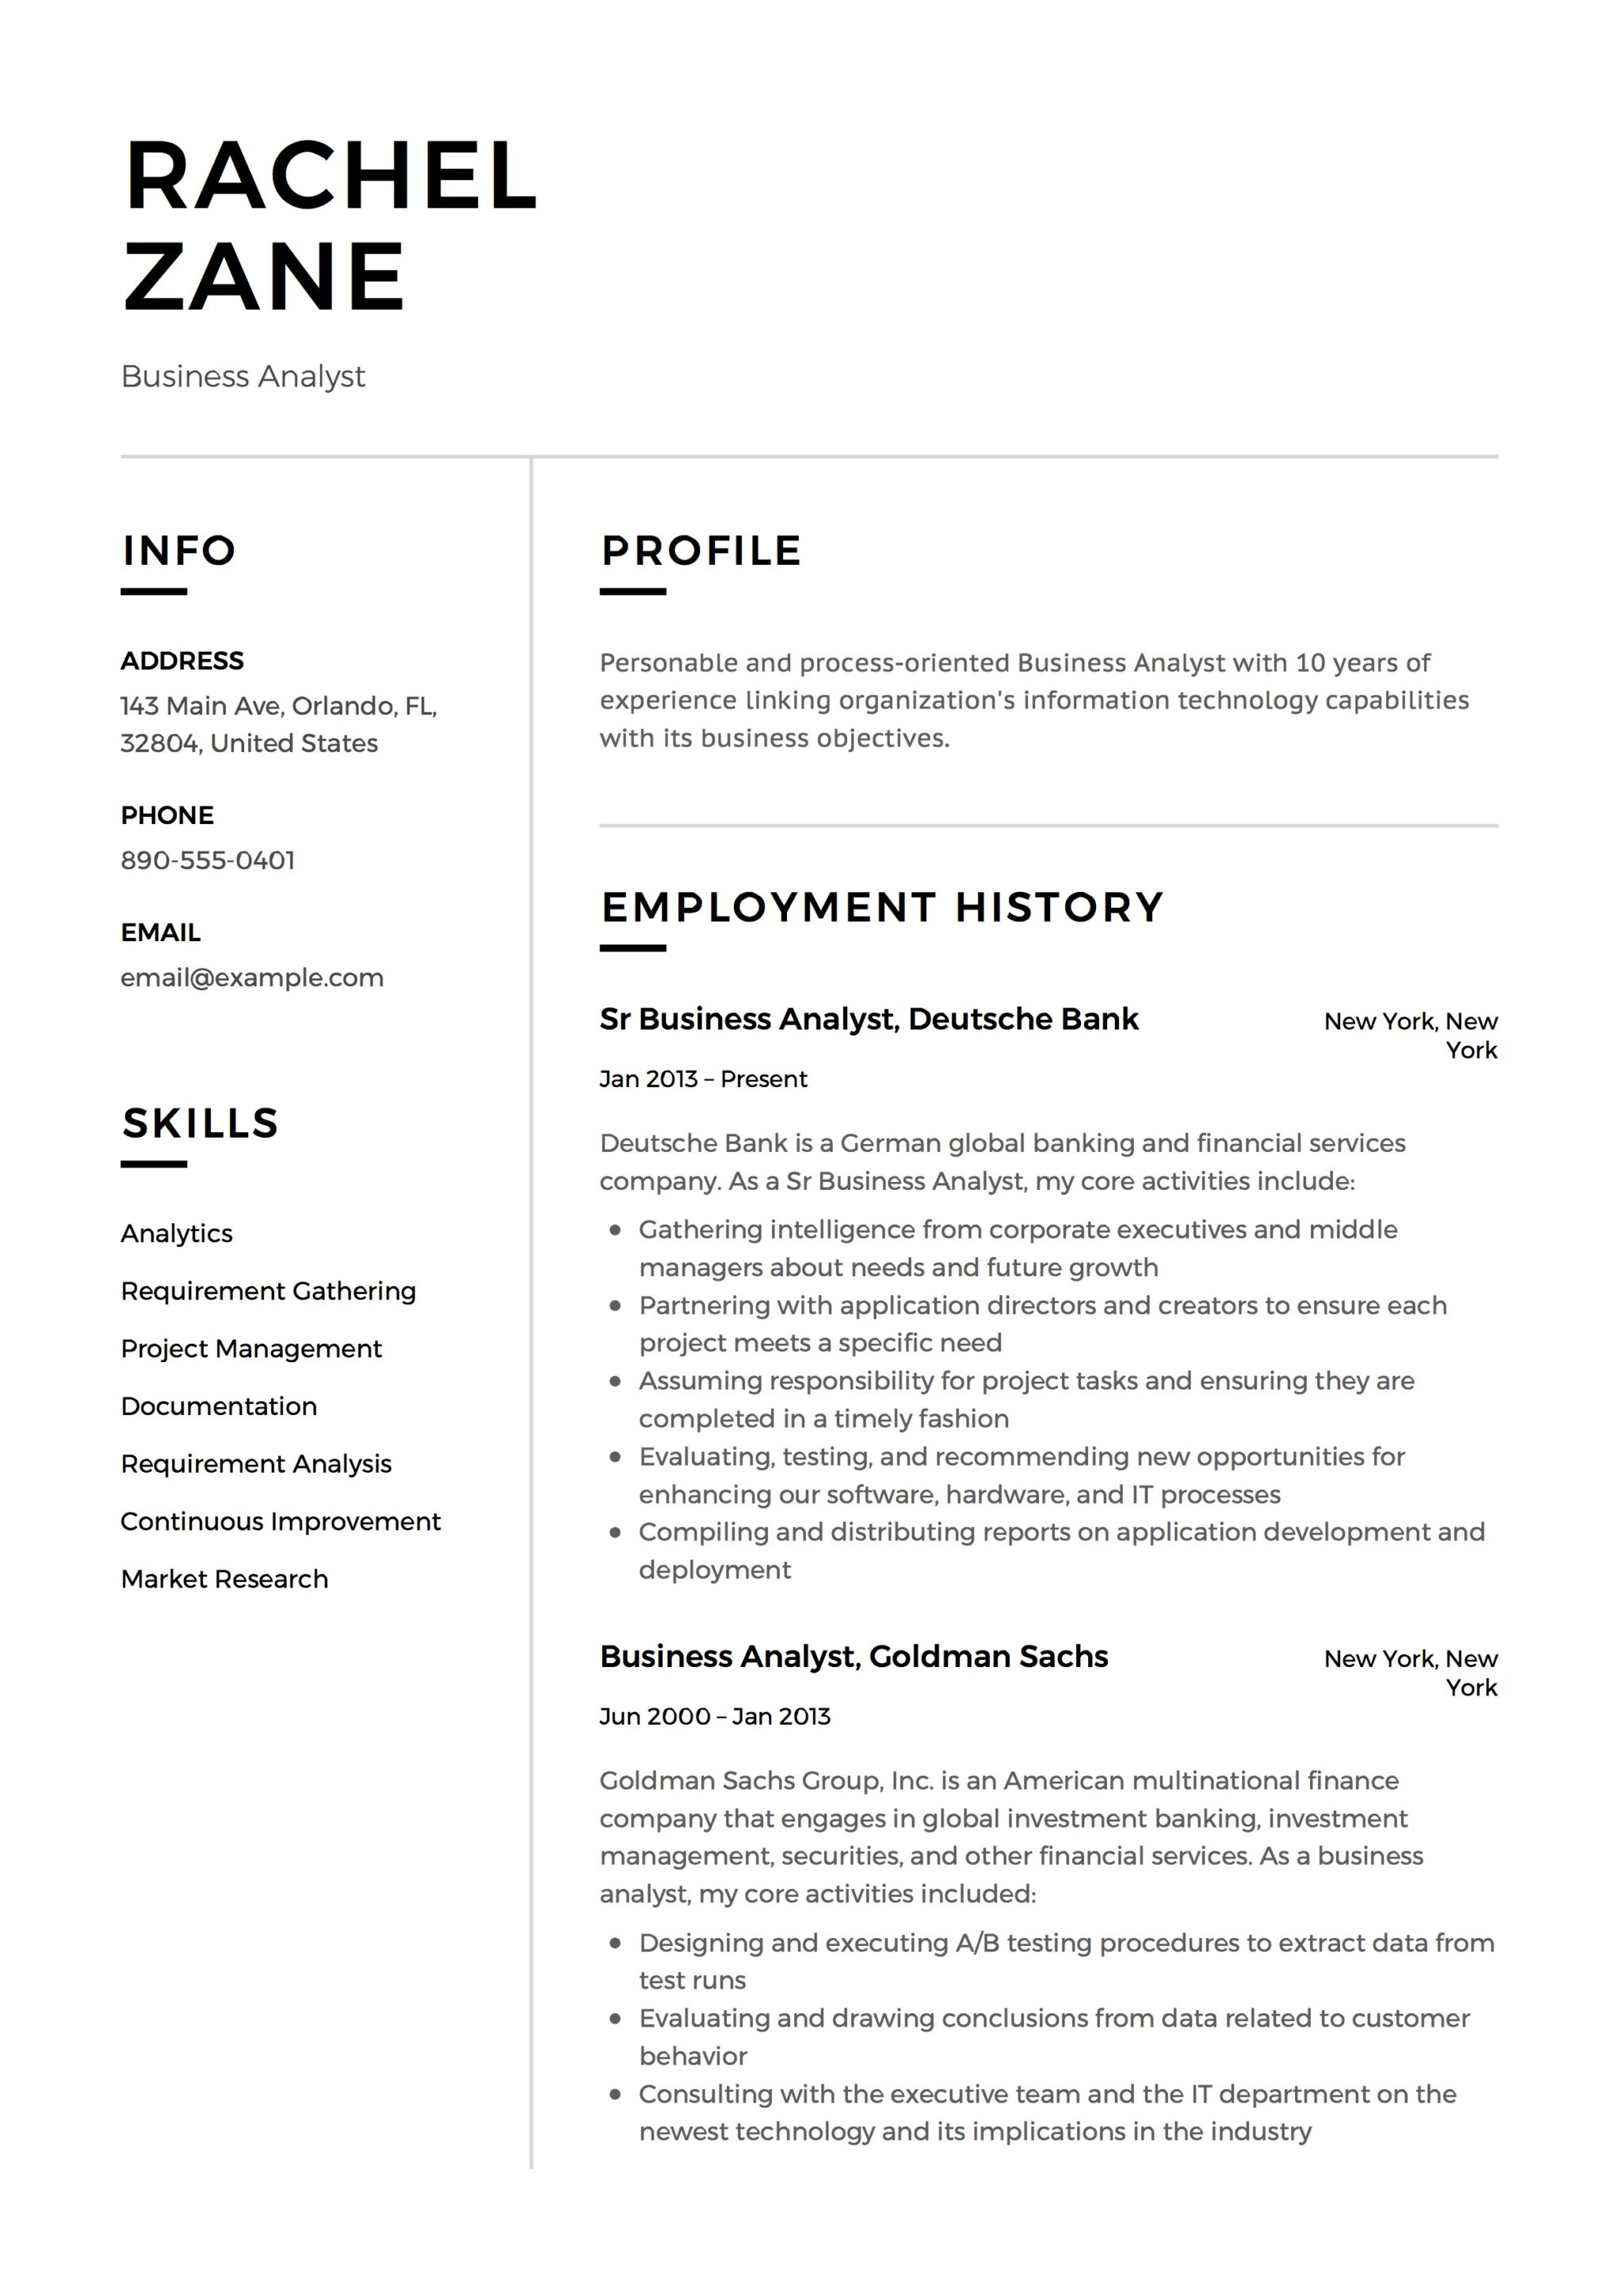 Business To Business Resume Rachel Zane Resume Business Analyst 11